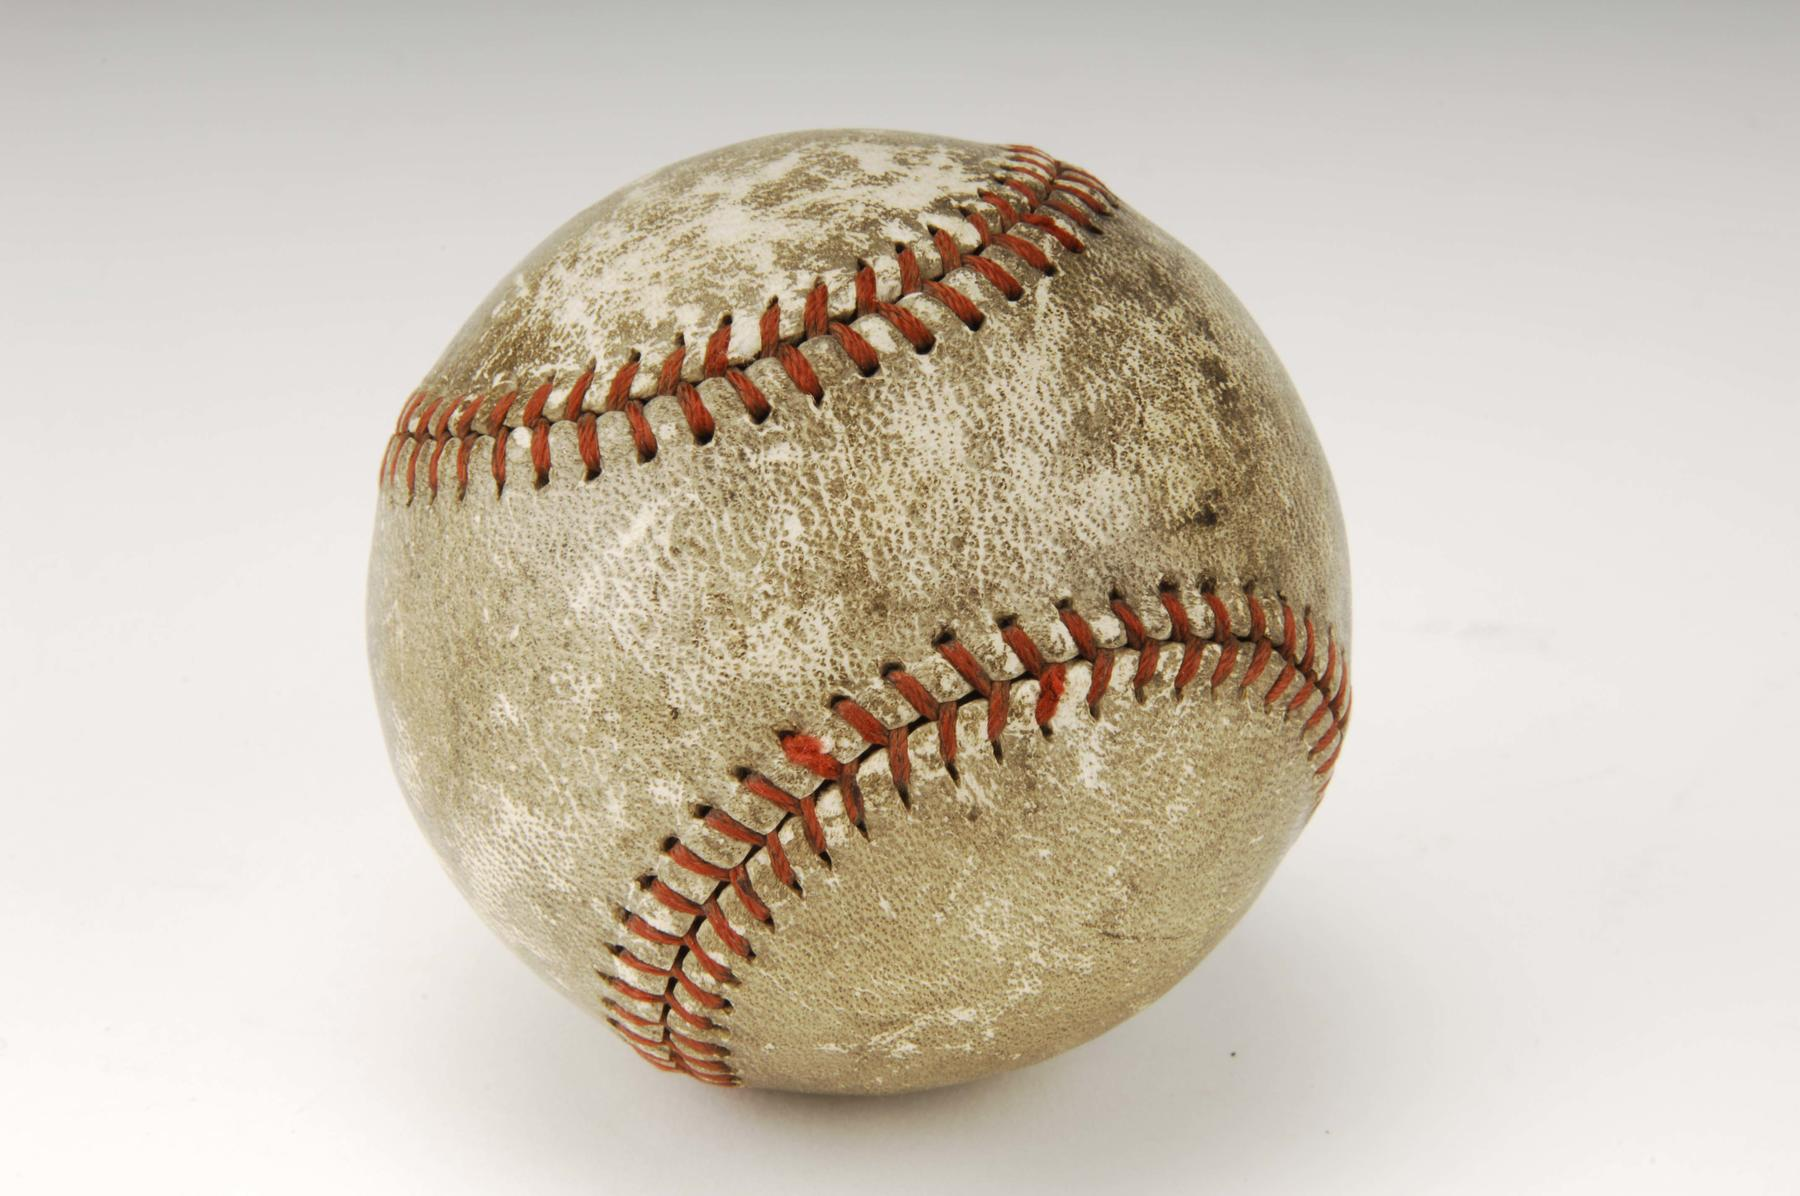 Ball hit by Babe Ruth for his 714th and final big league home run. B-16.48 (Milo Stewart Jr. / National Baseball Hall of Fame)